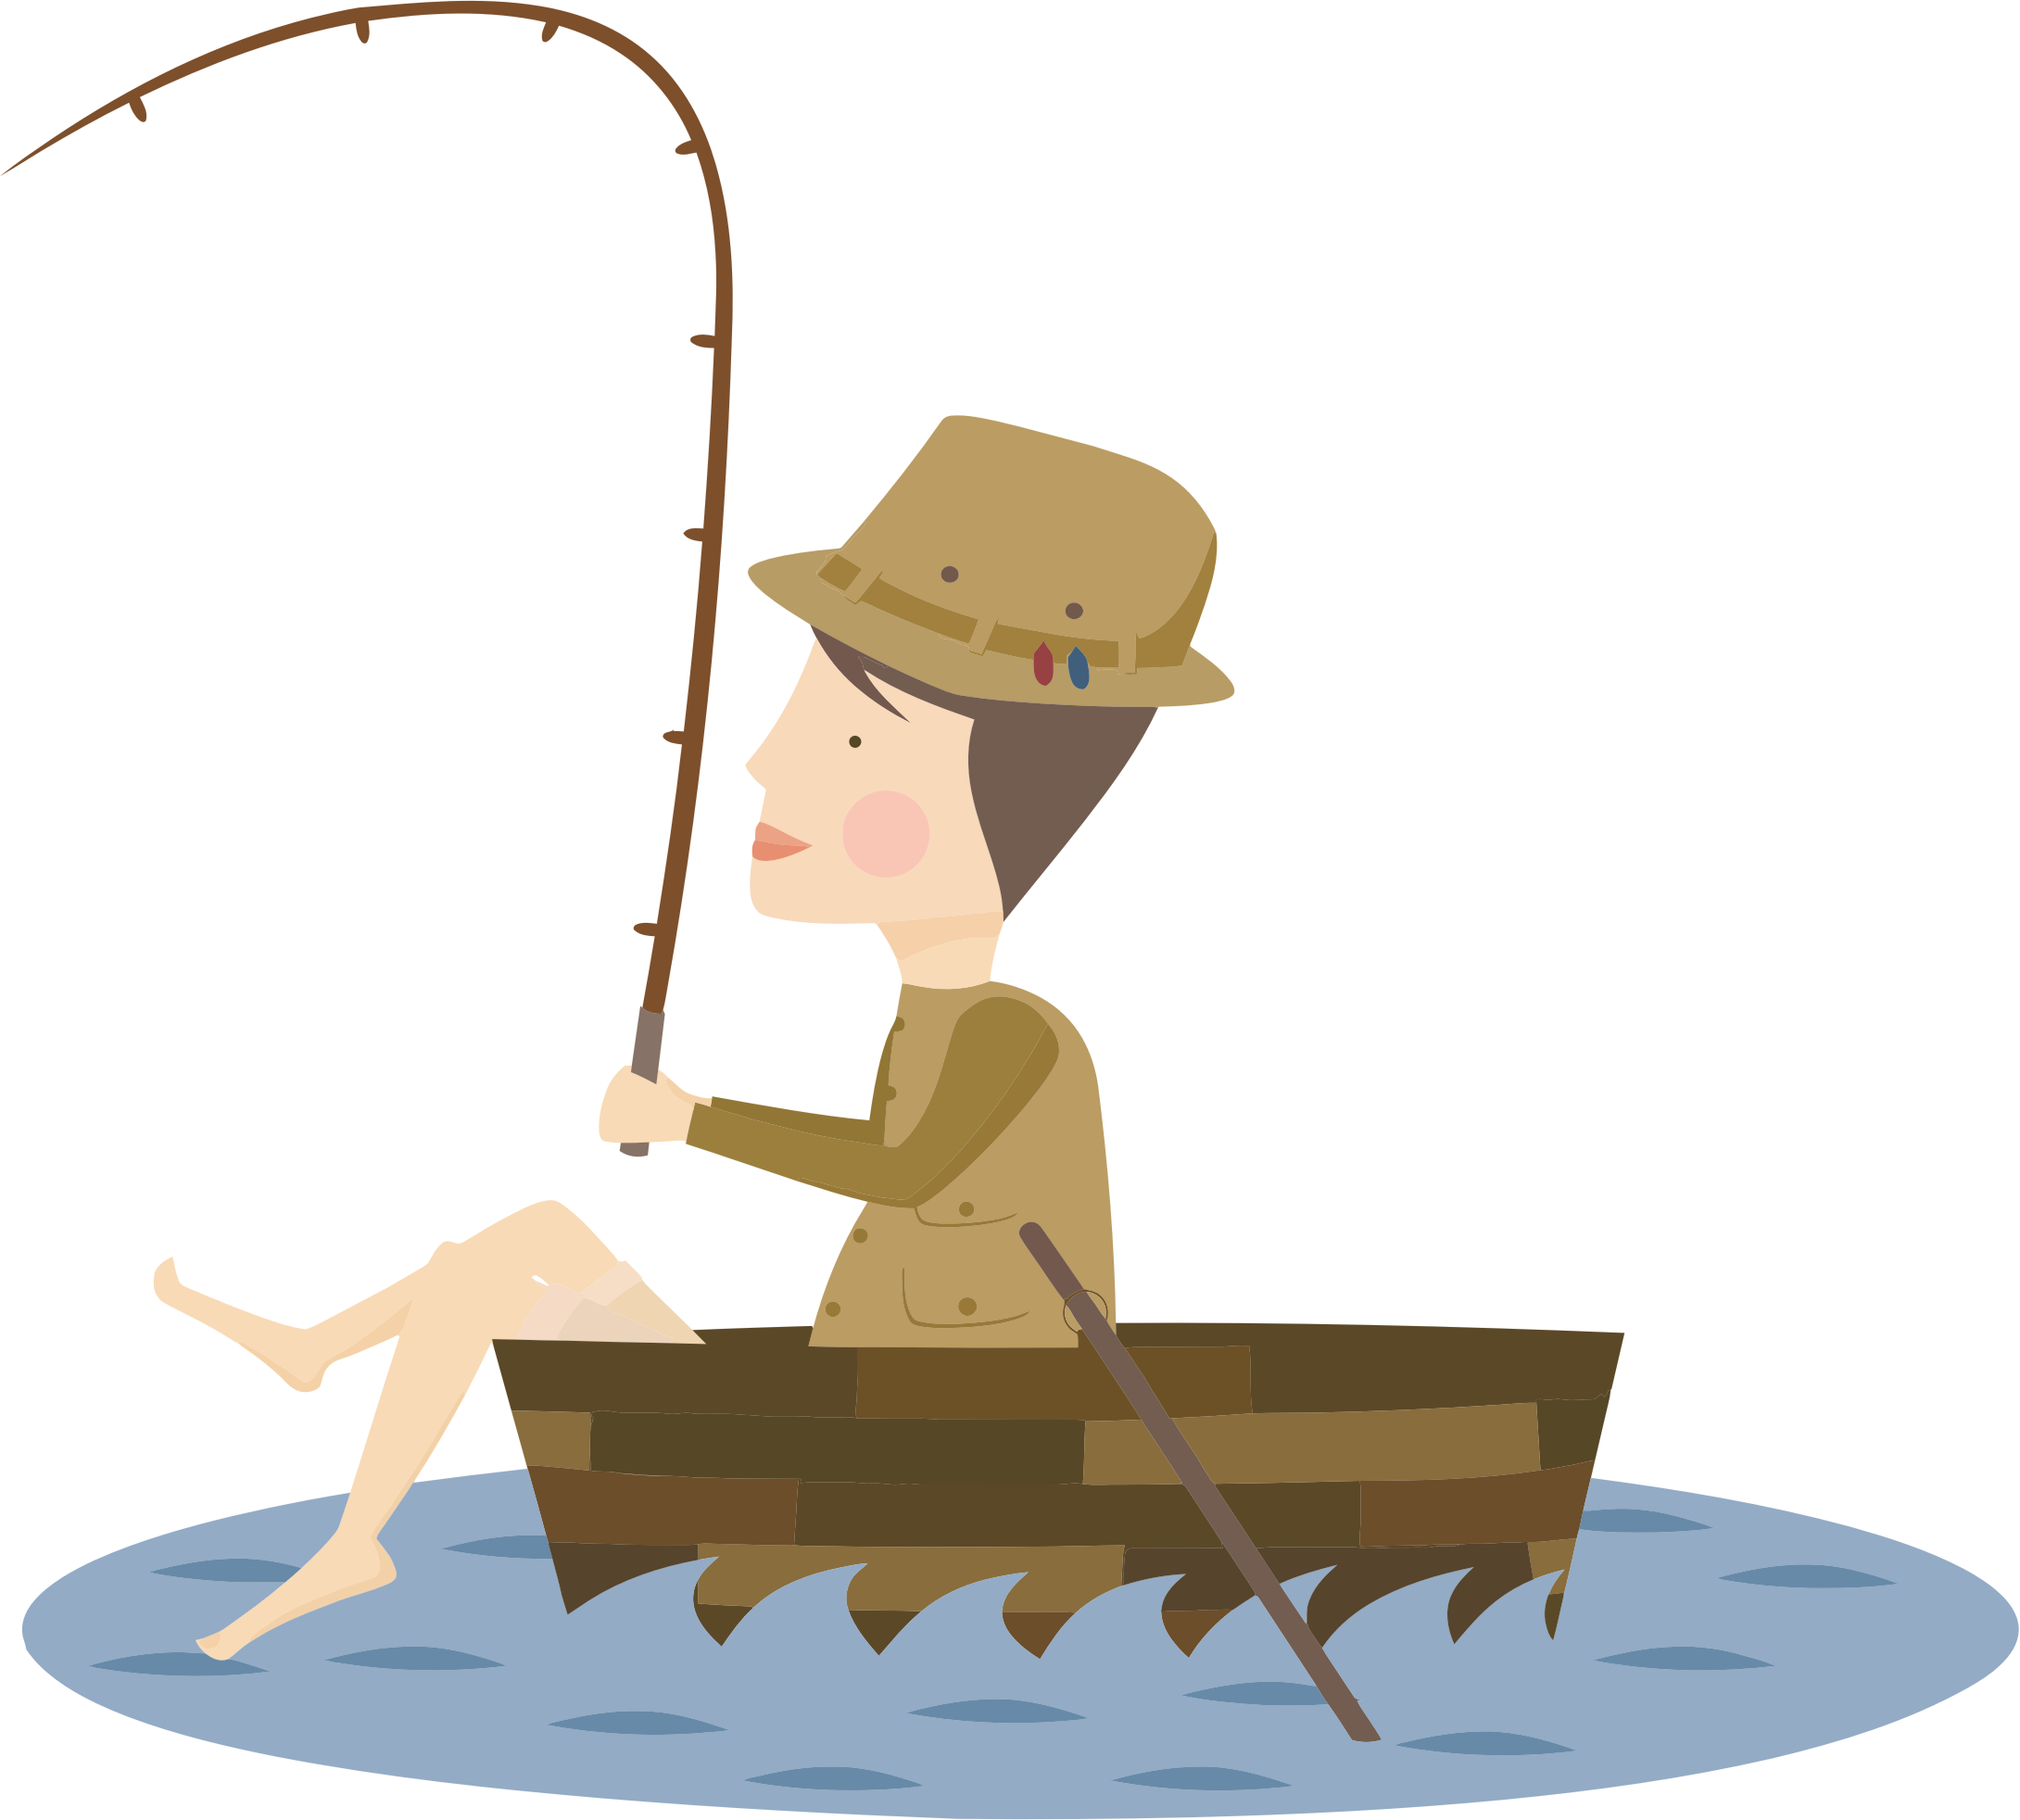 Cartoon Fisherman by GDJ